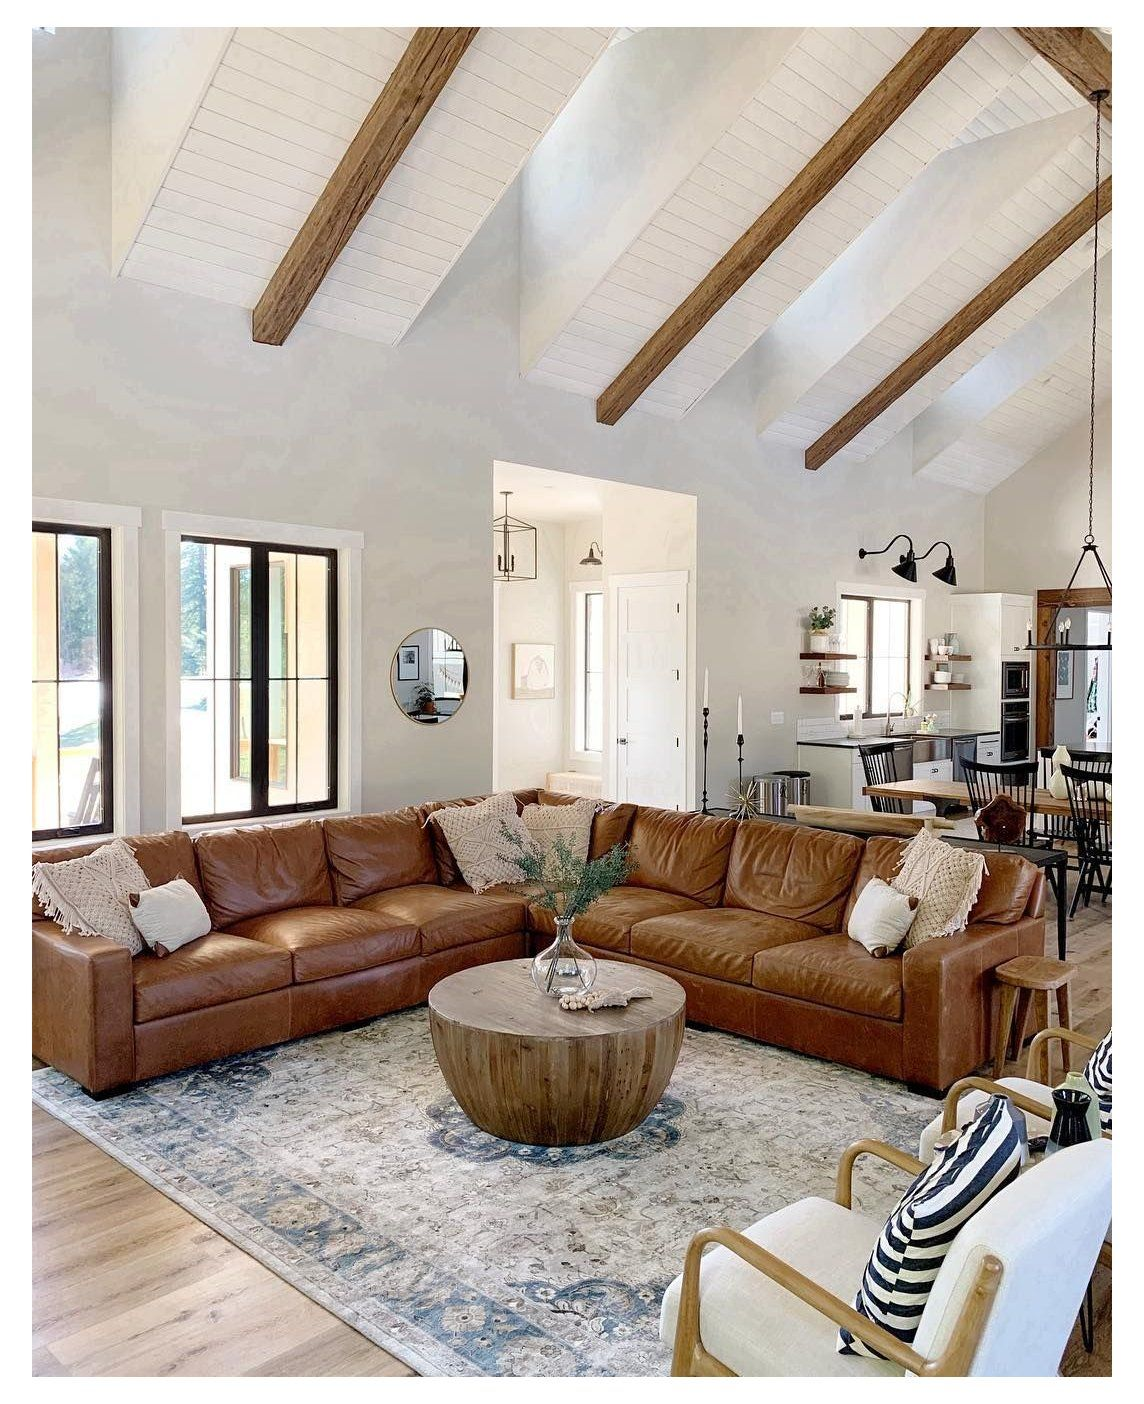 She Shed Decor Farmhouse Living Room, Cottage Style Living Room With Leather Couch